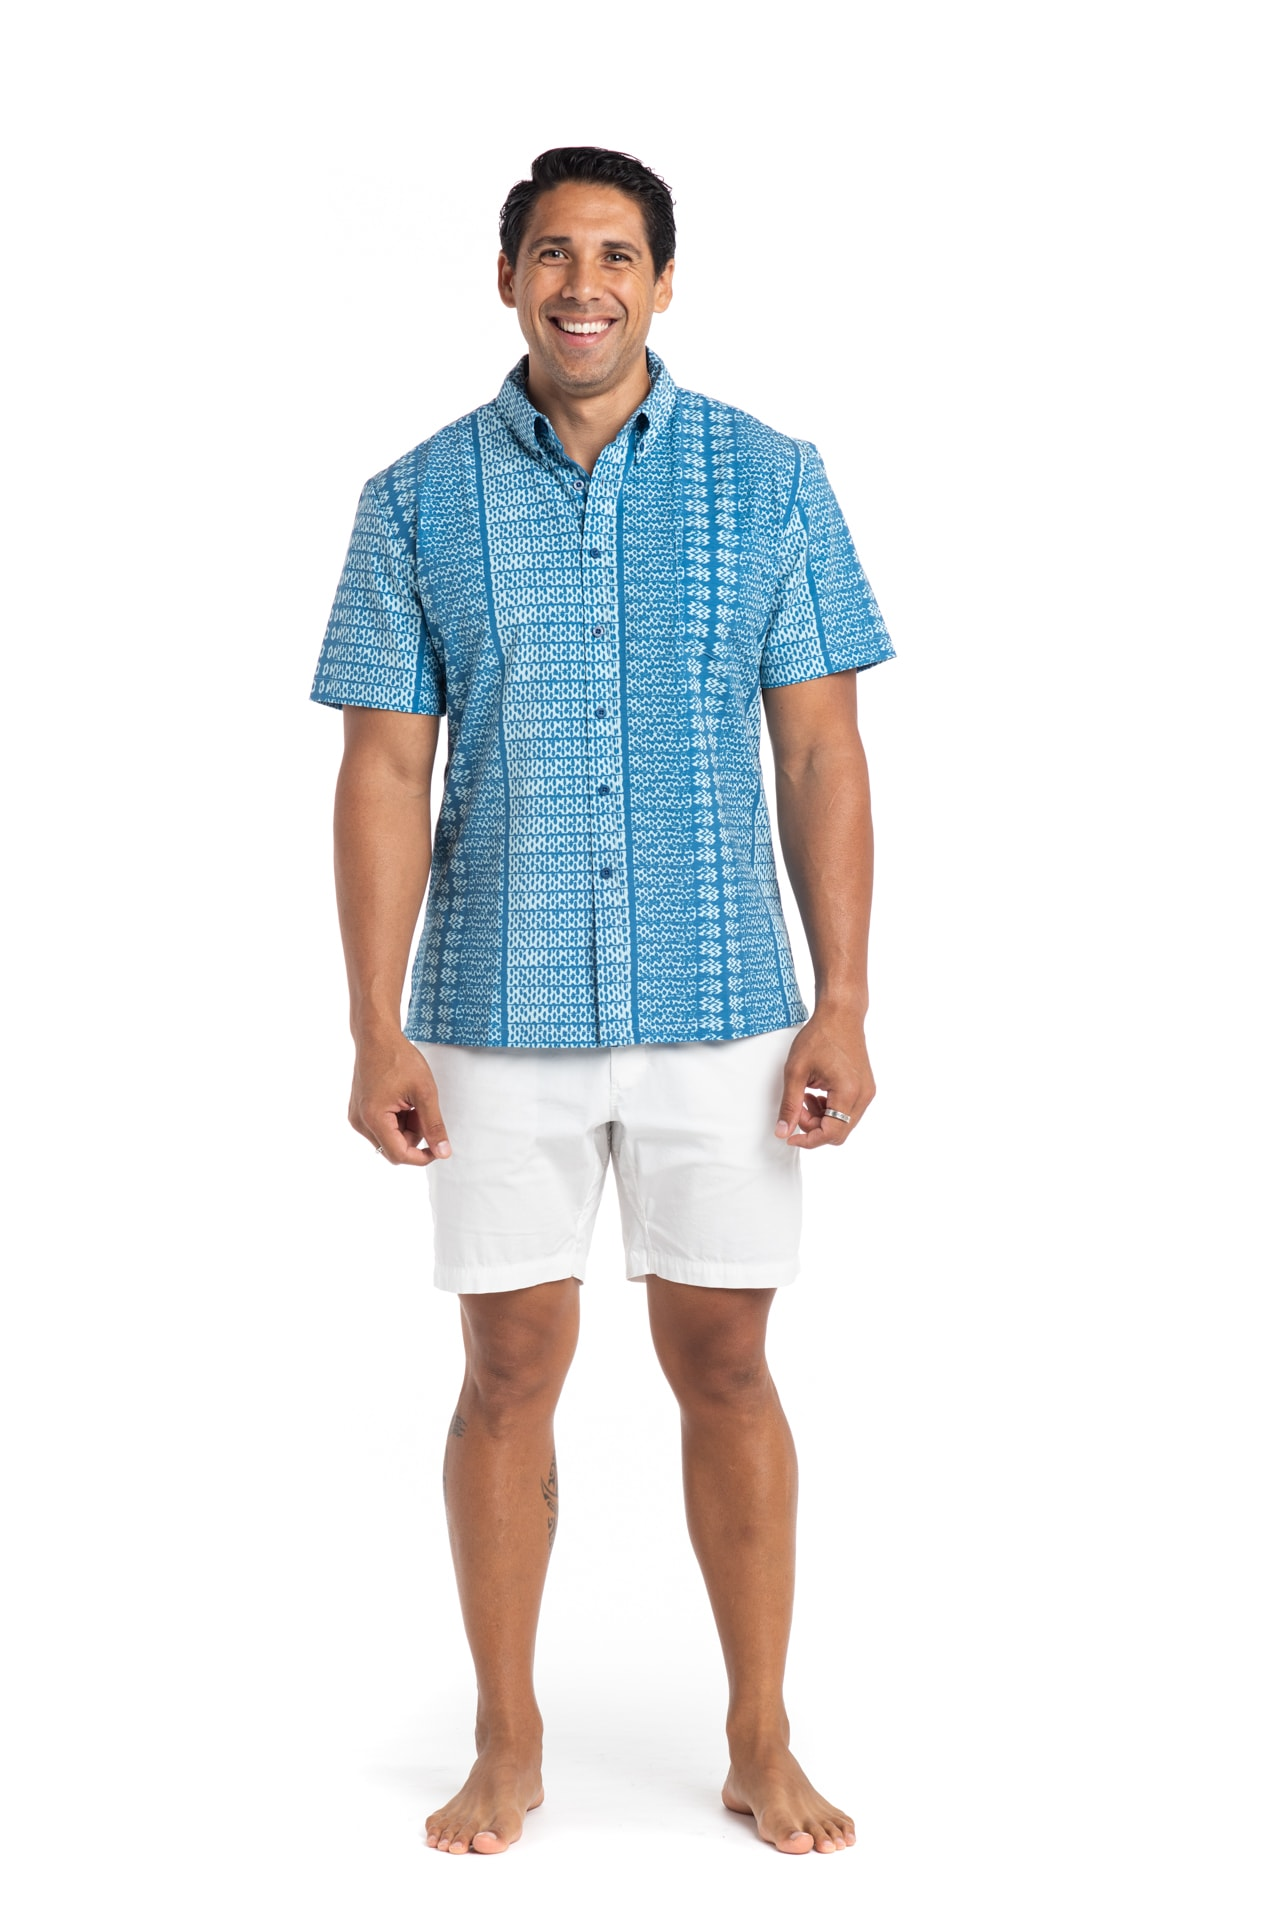 Male model wearing Mahalo Nui Shirt in Light Blue - Front View